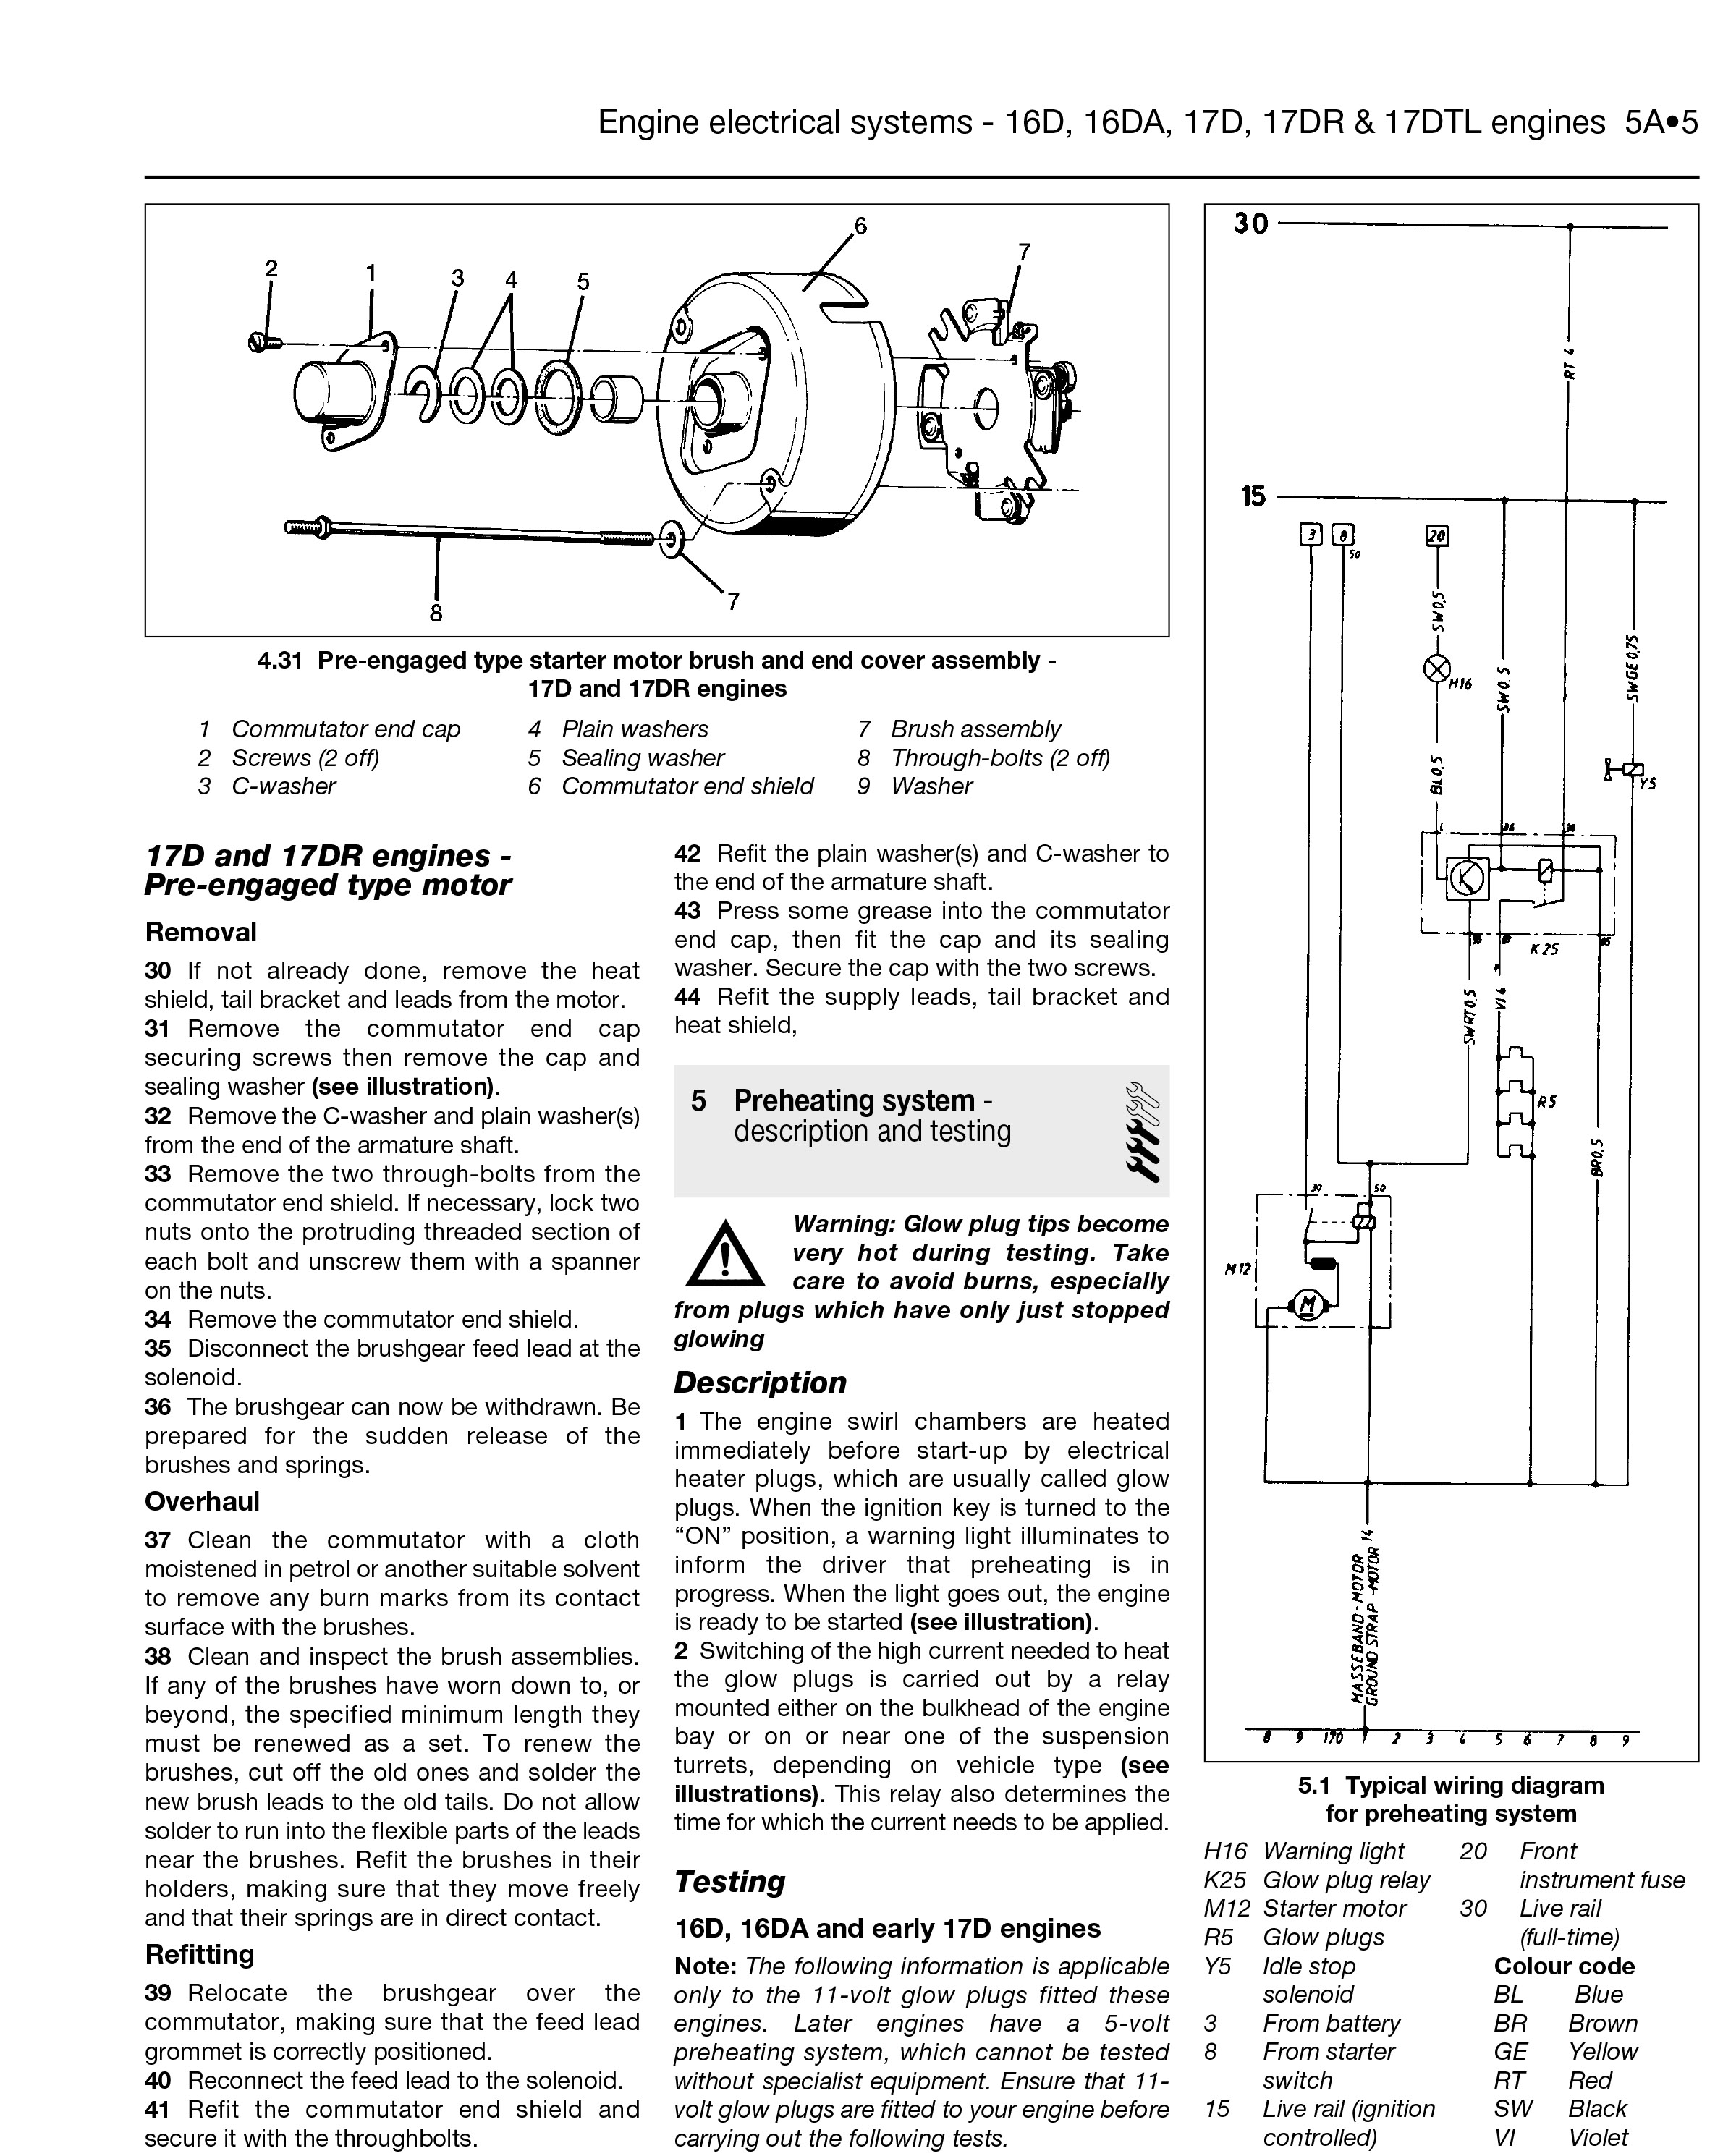 Wiring Diagram For Avital Remote Start additionally Wiring Diagrams Viper Car Alarms in addition Car Wiring Knock Sensor Diagram 89 Diagrams Wire Beauteous Cam together with Iso 9001 Remote Car Starter Wiring Diagram furthermore Wiring Diagram Murray Lawn Mower Craftsman Riding Also Tractor. on autopage alarm wiring diagram for ford